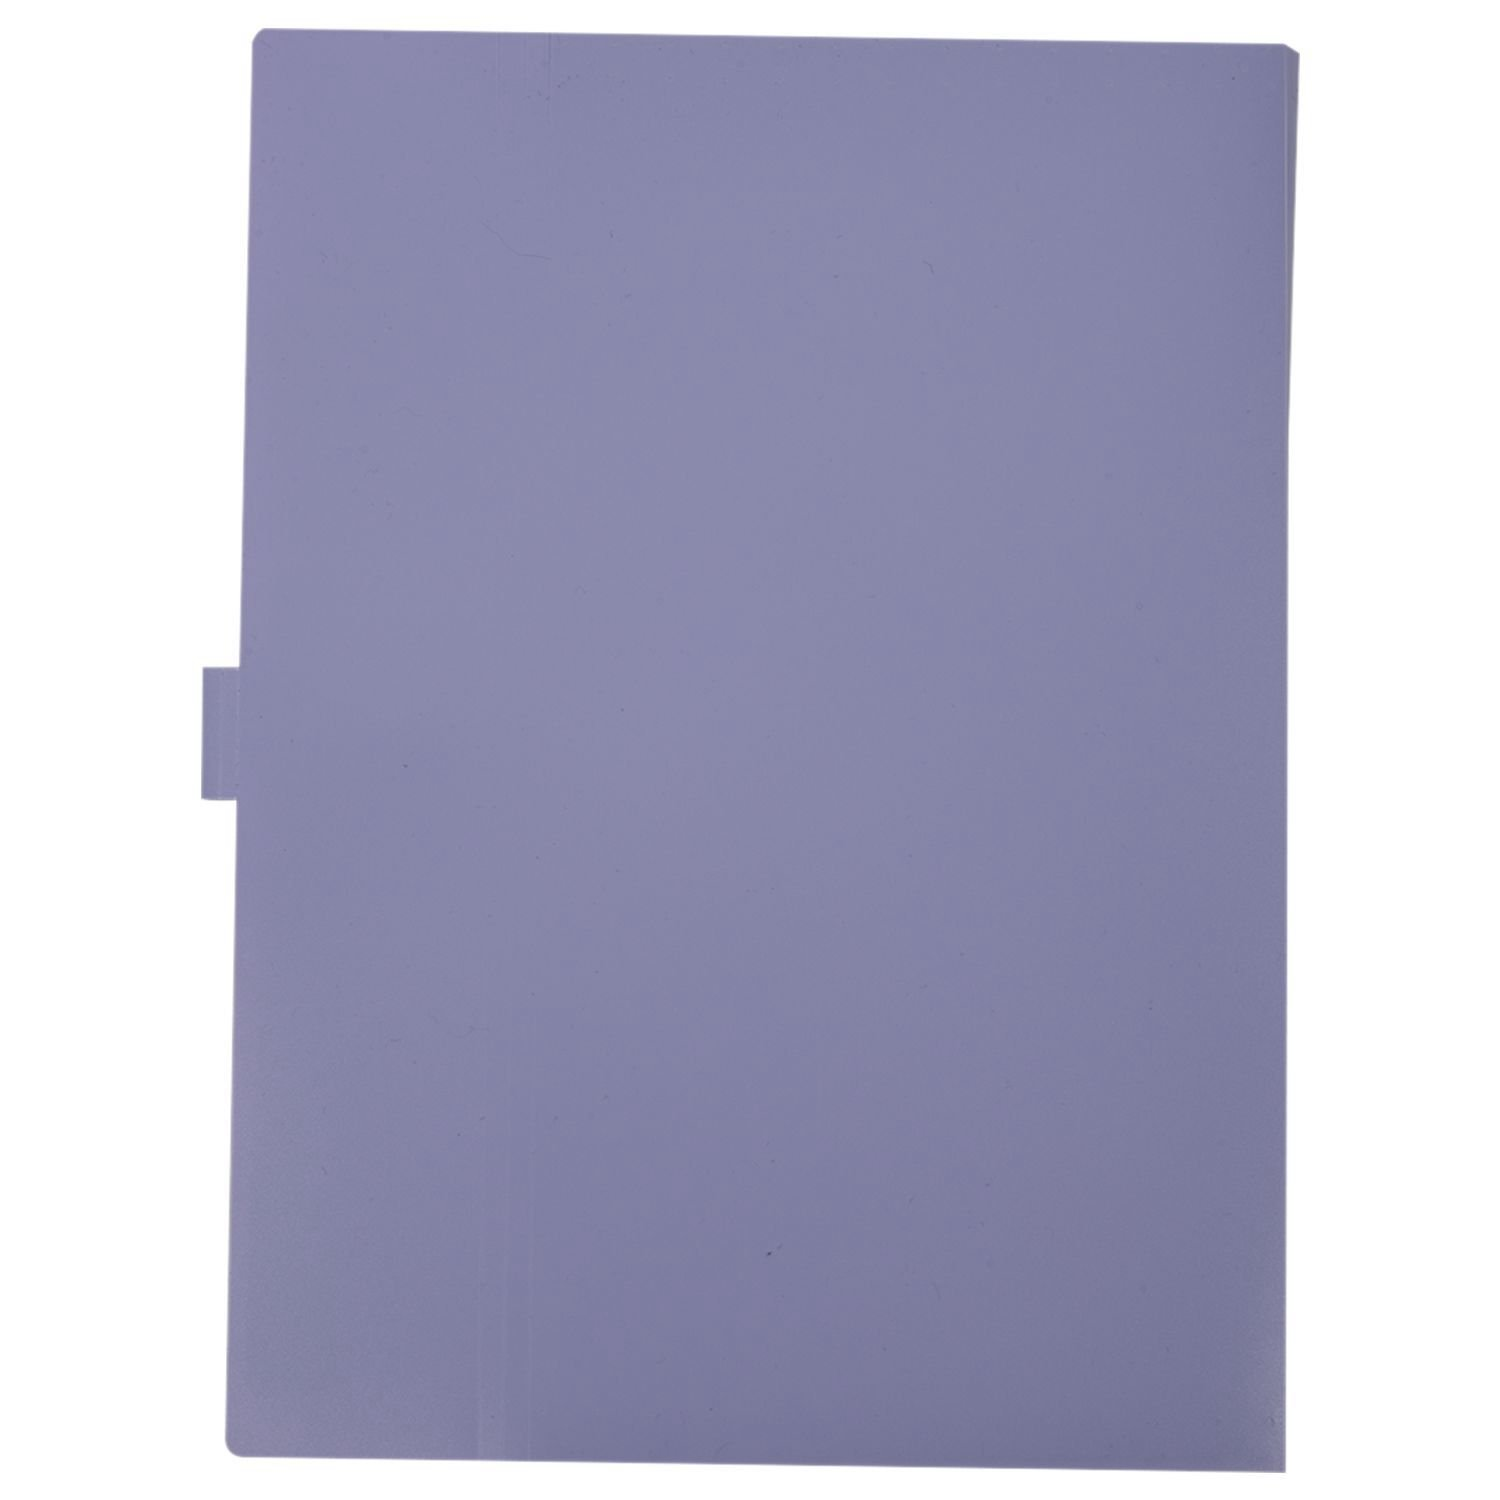 Amazon.com : SODIAL(R) Kawaii FoldersStationery Carpeta File Folder 5layers Archivadores Rings A4 Document Bag Office Carpetas£¨Purple£ : Office Products